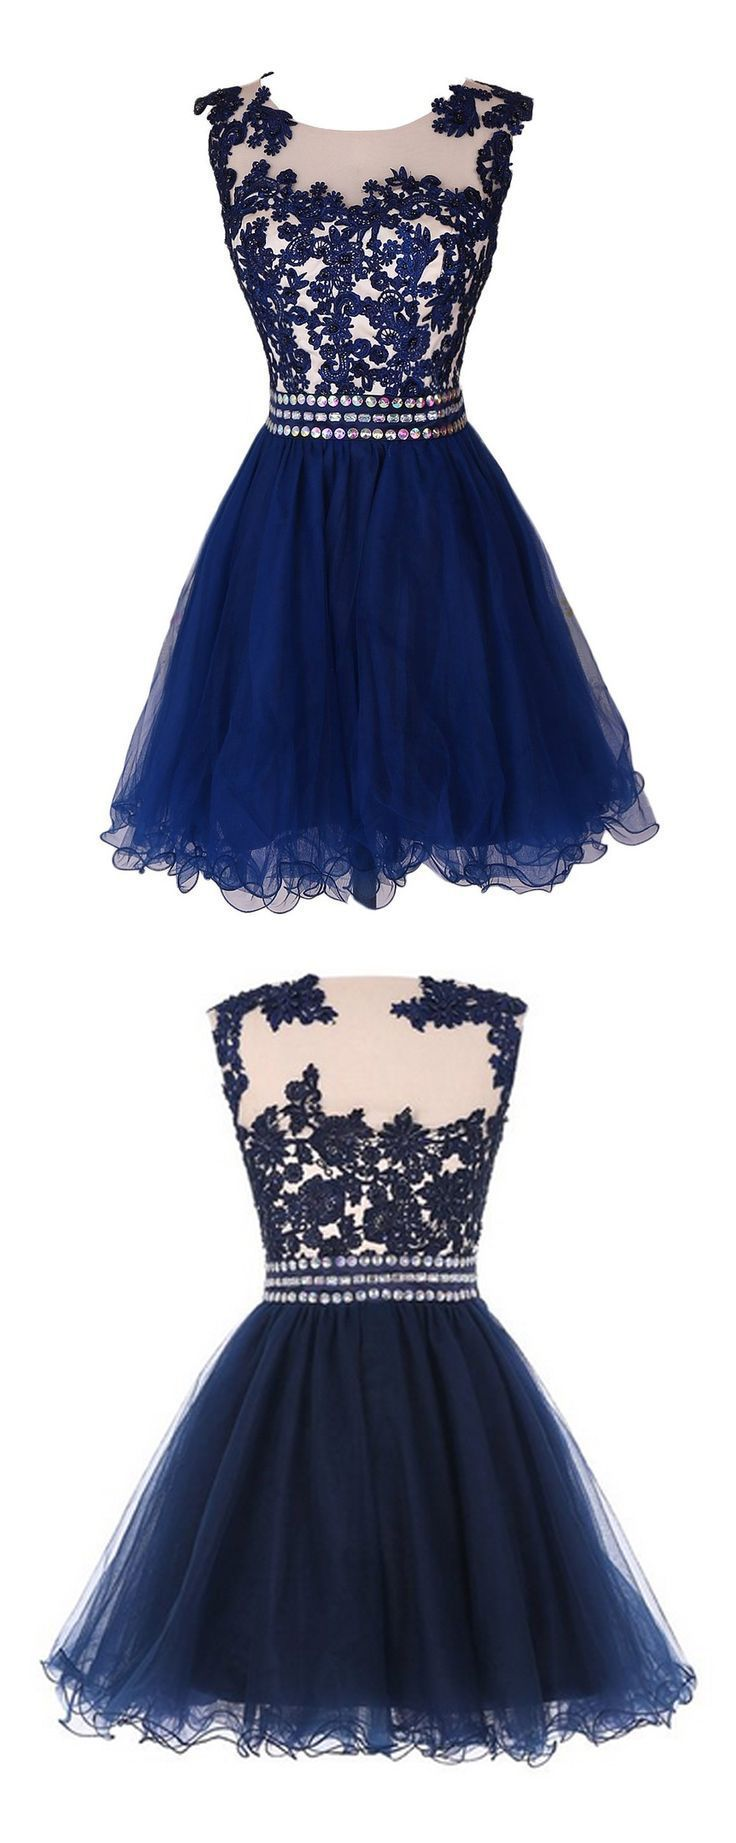 Royal blue homecoming dresses short homecoming dresses dresses for